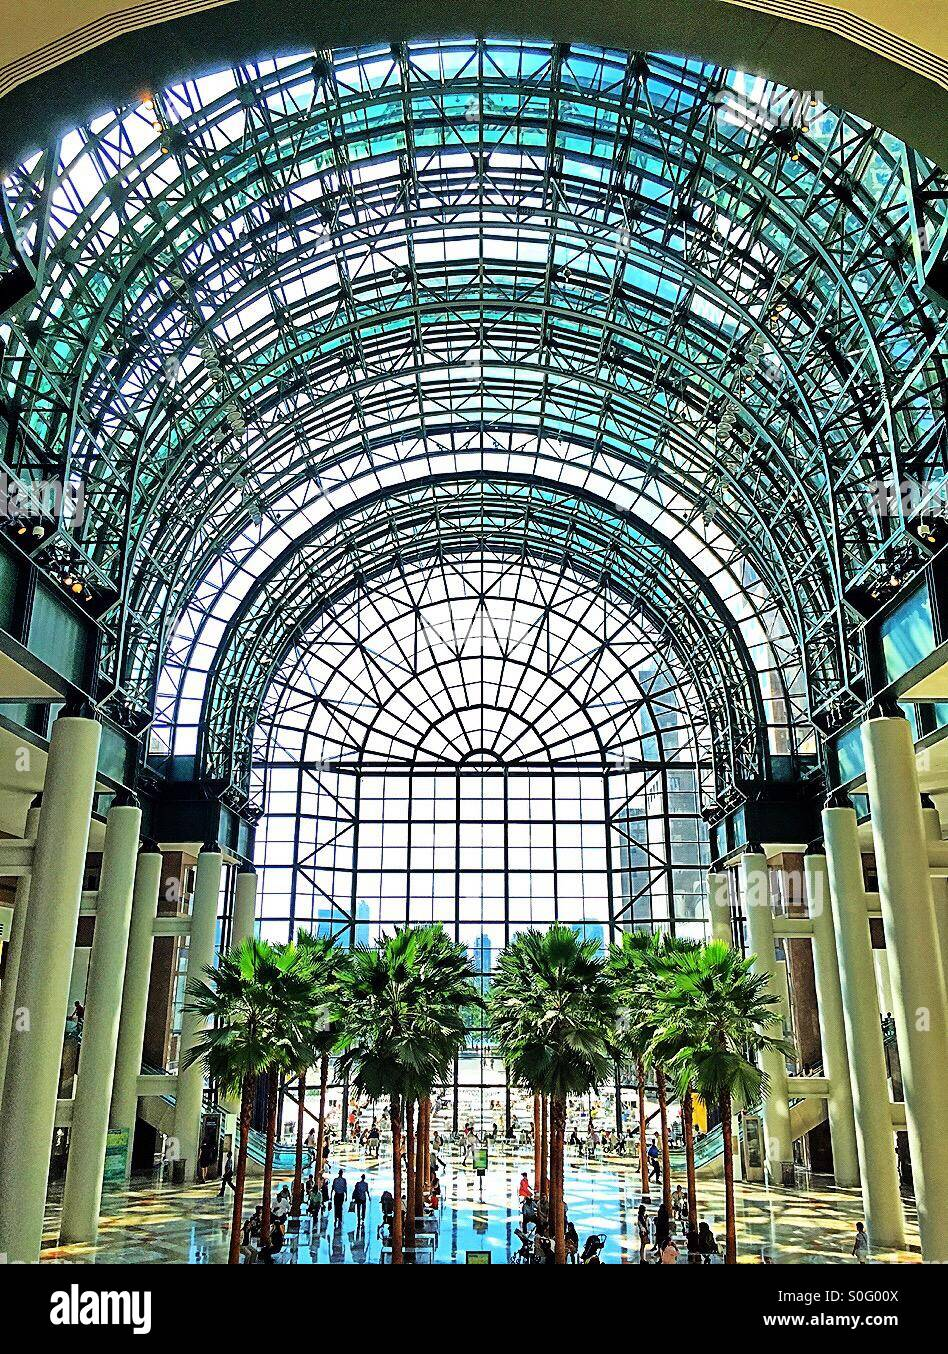 The Atrium In Brookfield Place Nyc Stock Photo 310137882